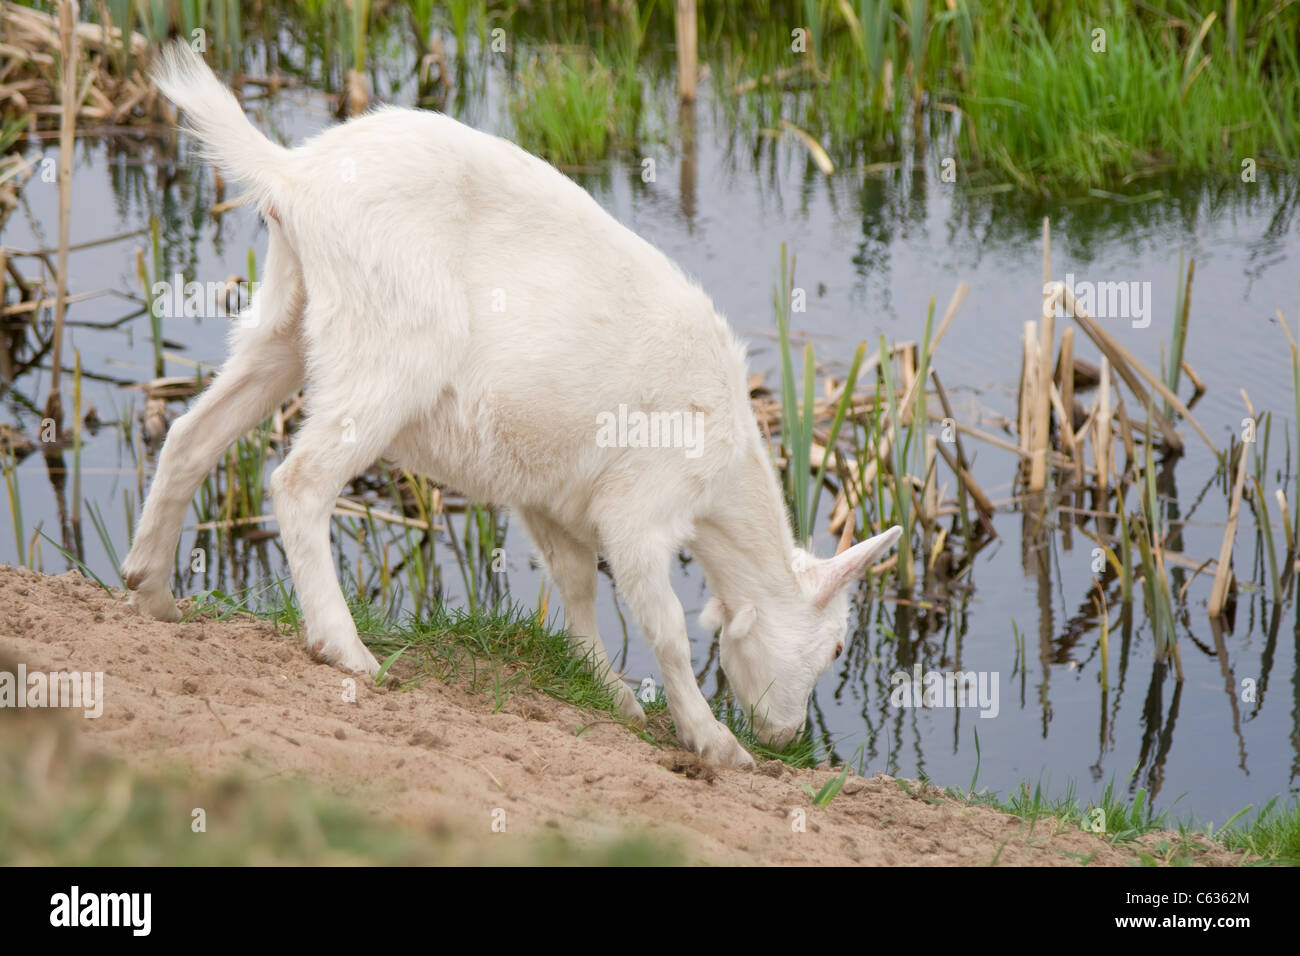 young goat drinking water from stock photos young goat drinking